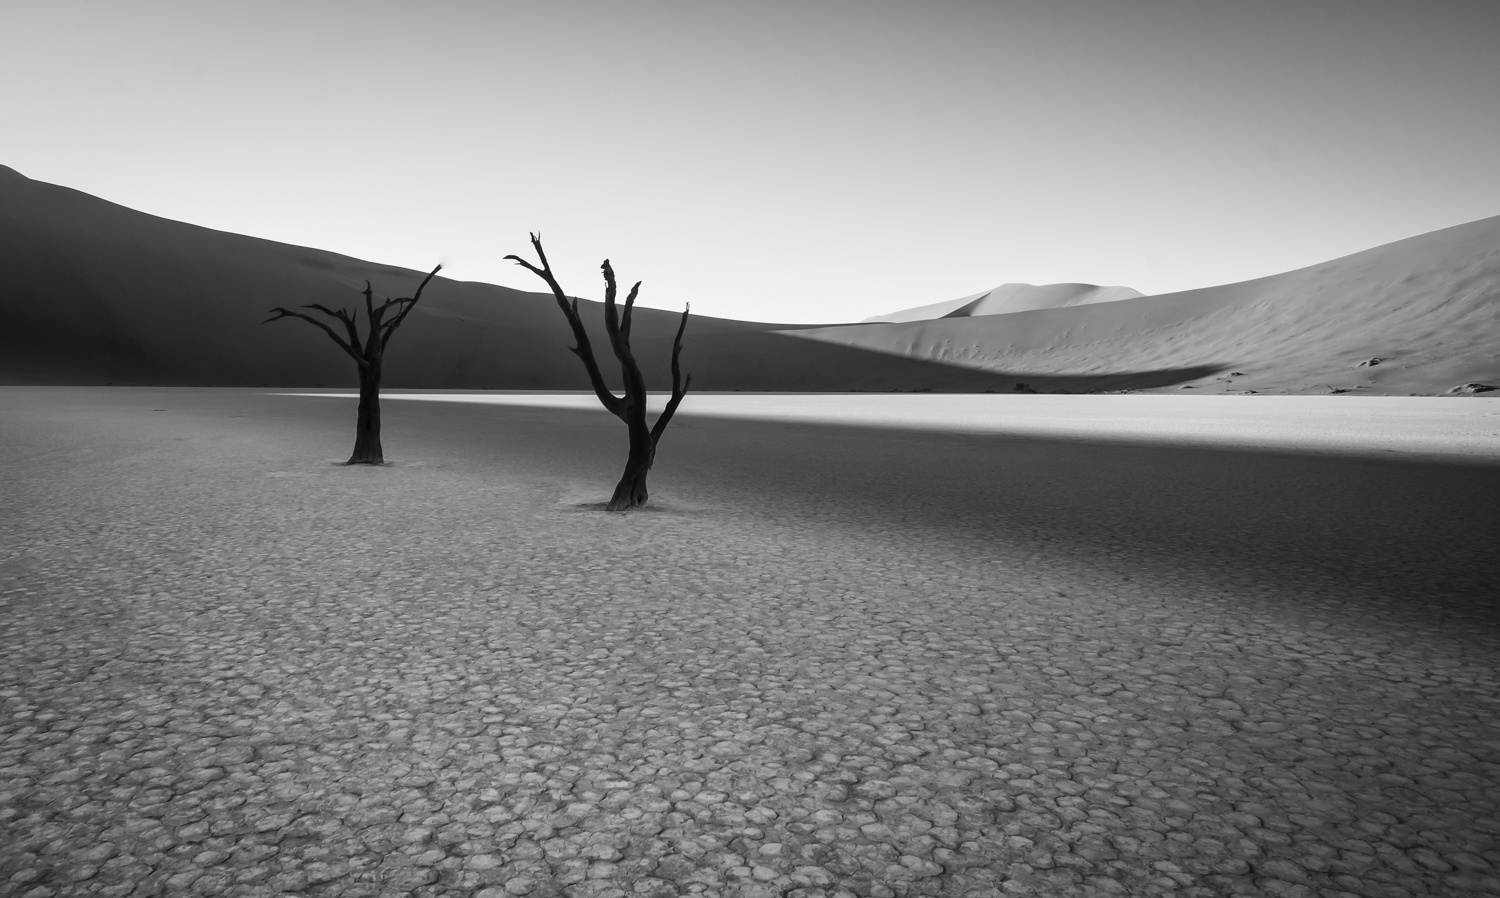 Namibia study #9 by Wilfred Berthelsen